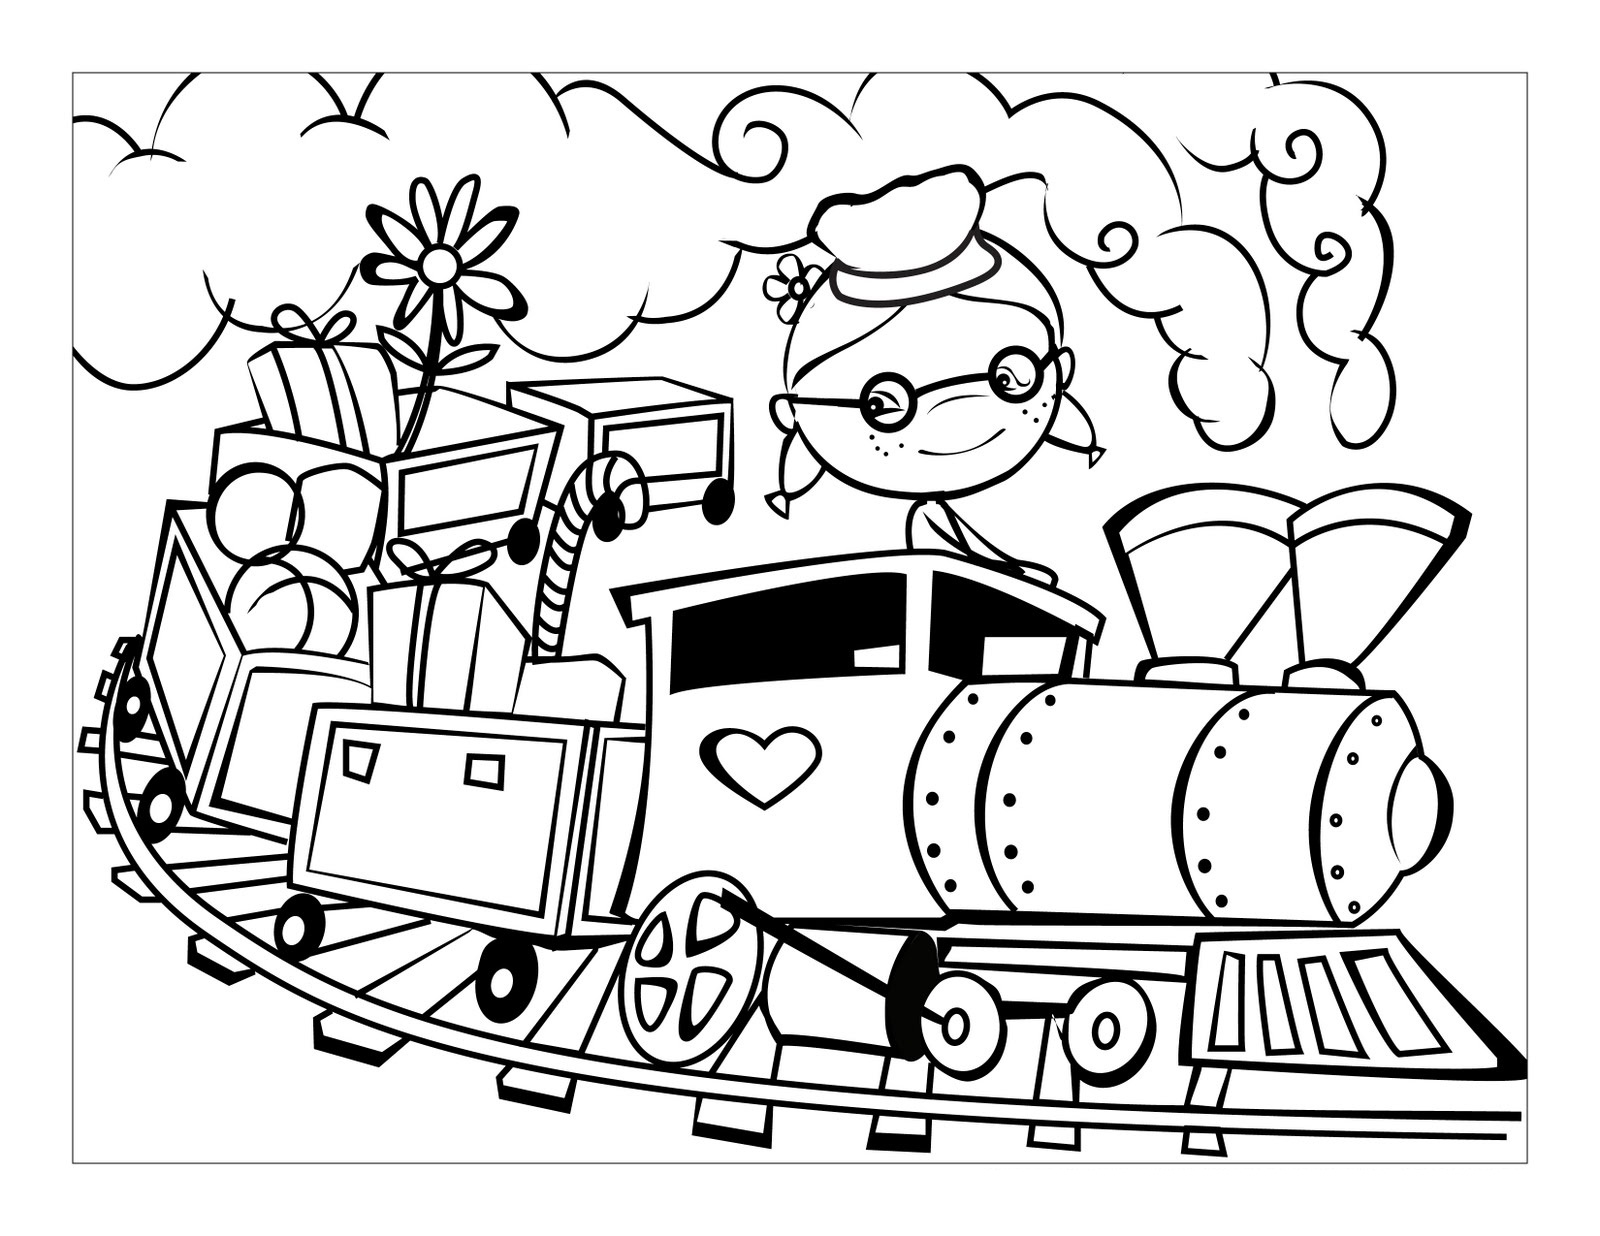 Coloring pages trains for kids - Train Cars Coloring Pages